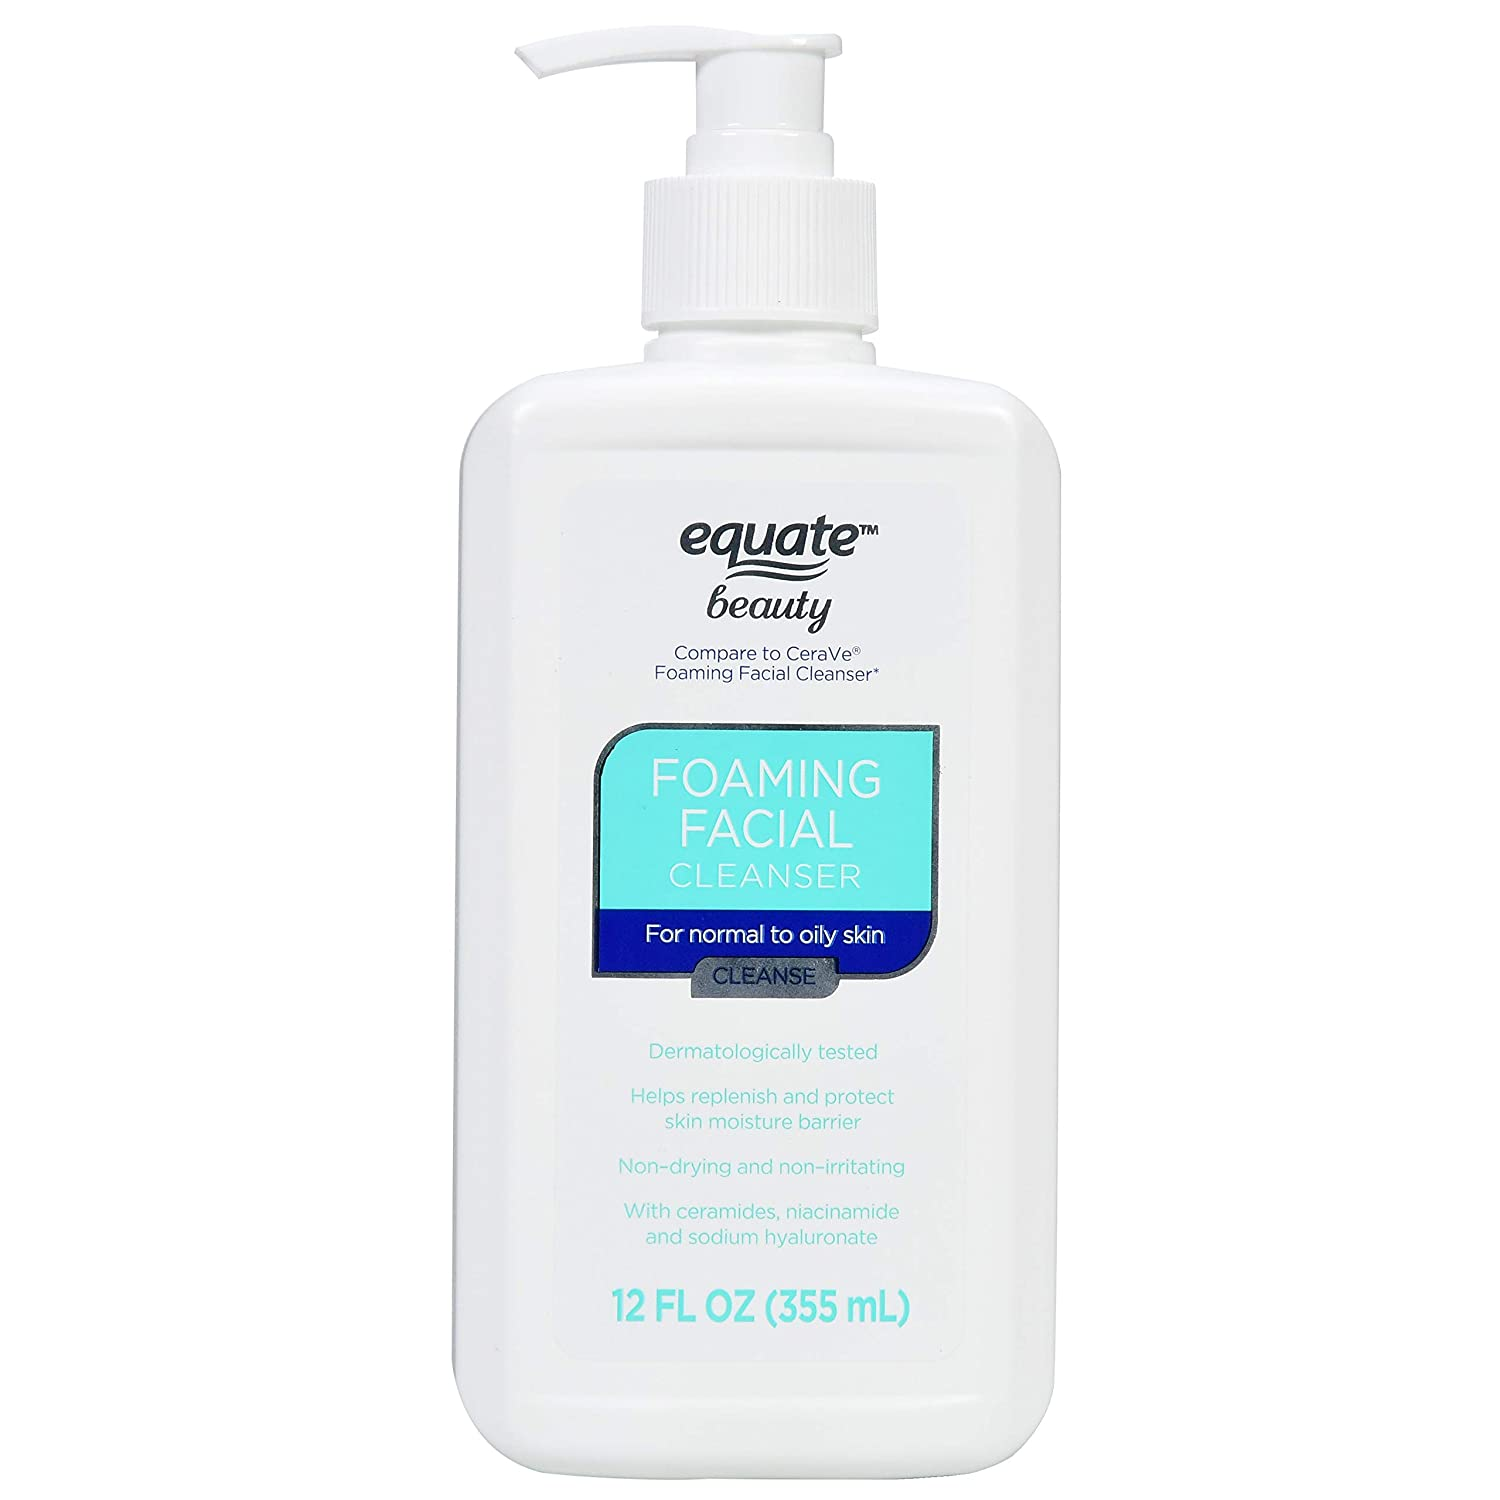 Equate Beauty Foaming Facial Cleanser, Normal to Oily Skin, 12 fl oz